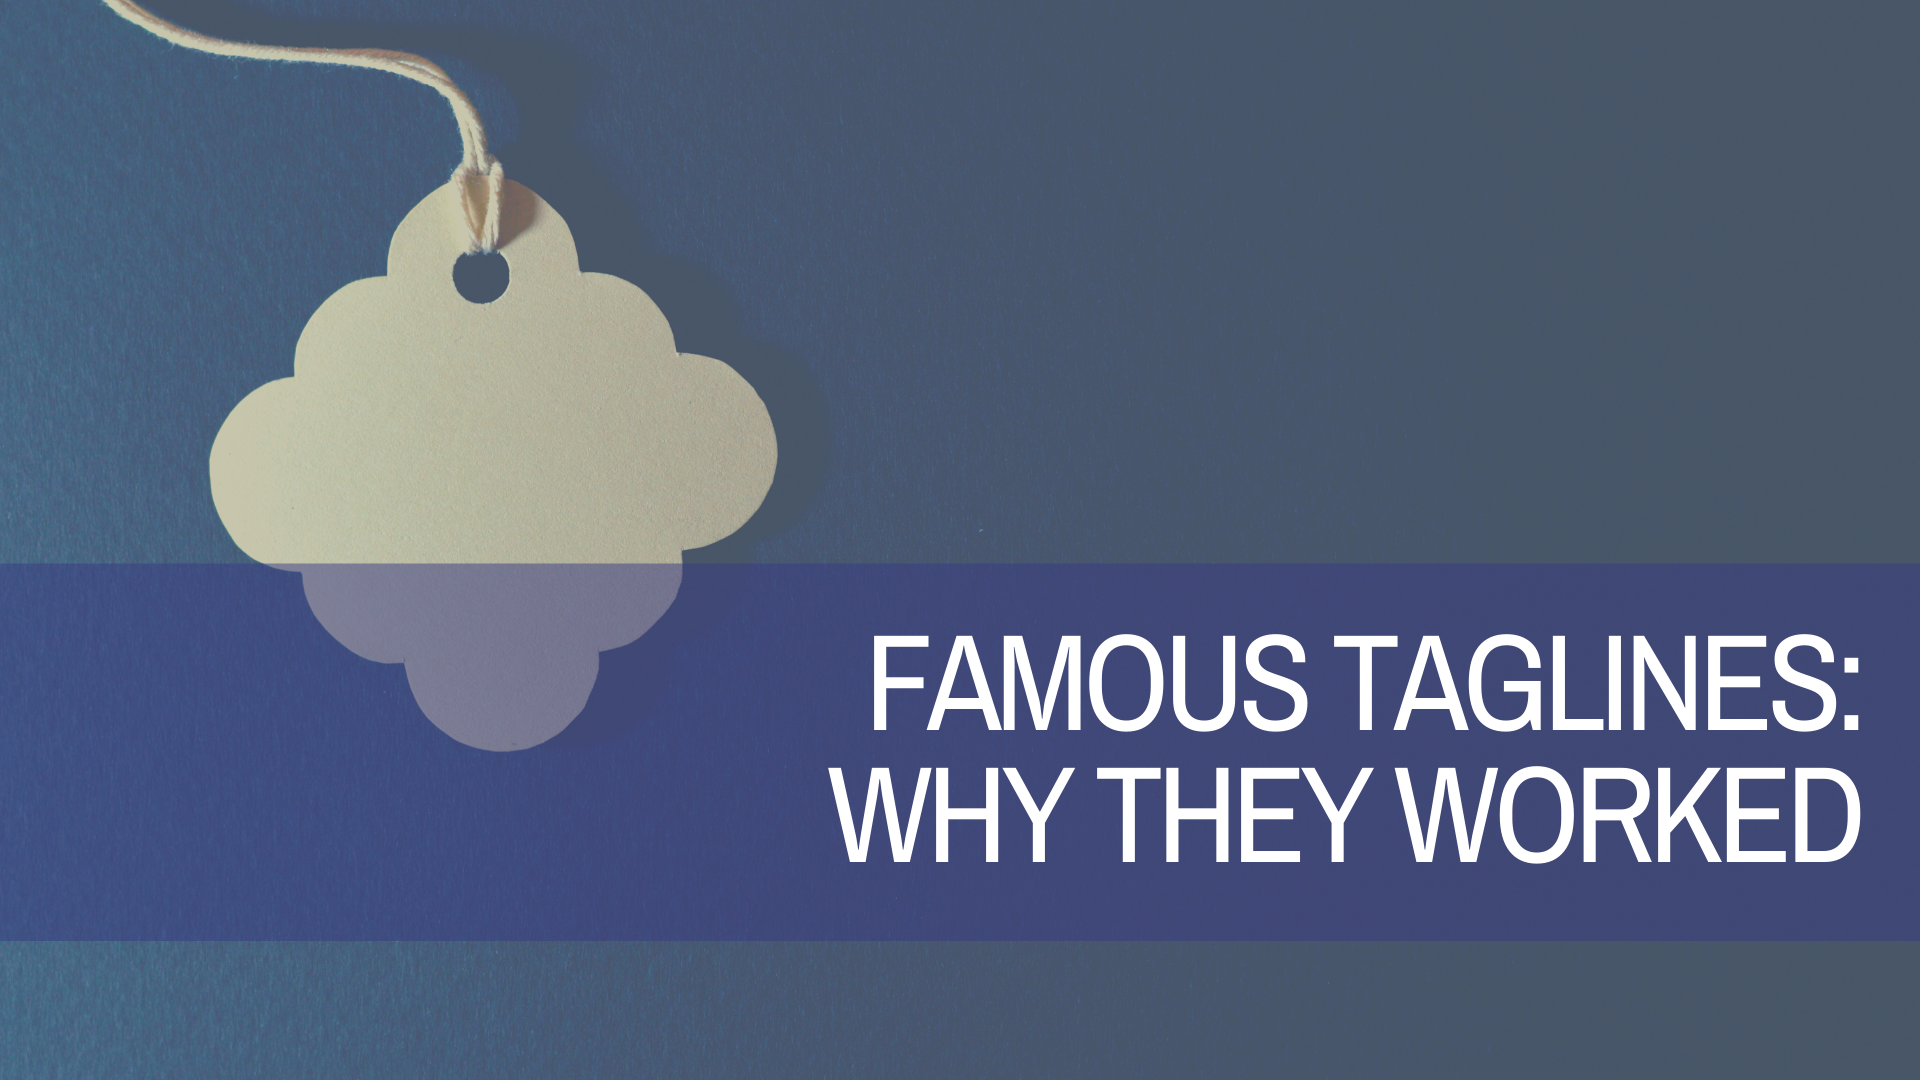 the most famous taglines: why they worked